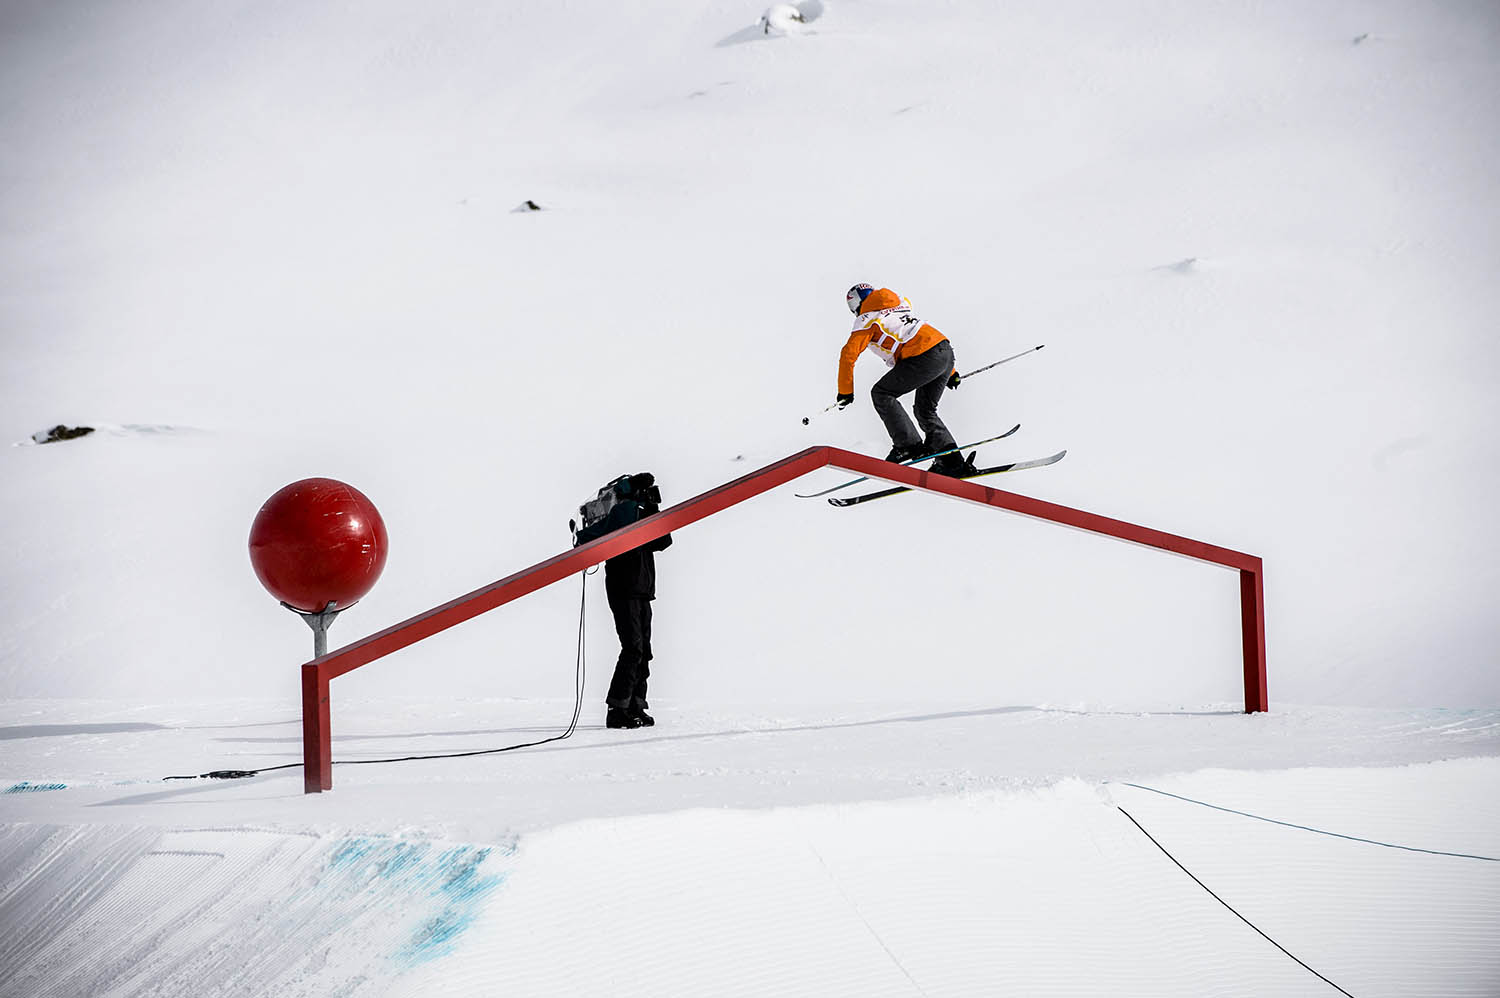 FIS Freestyle Ski World Cup Final in St. Moritz